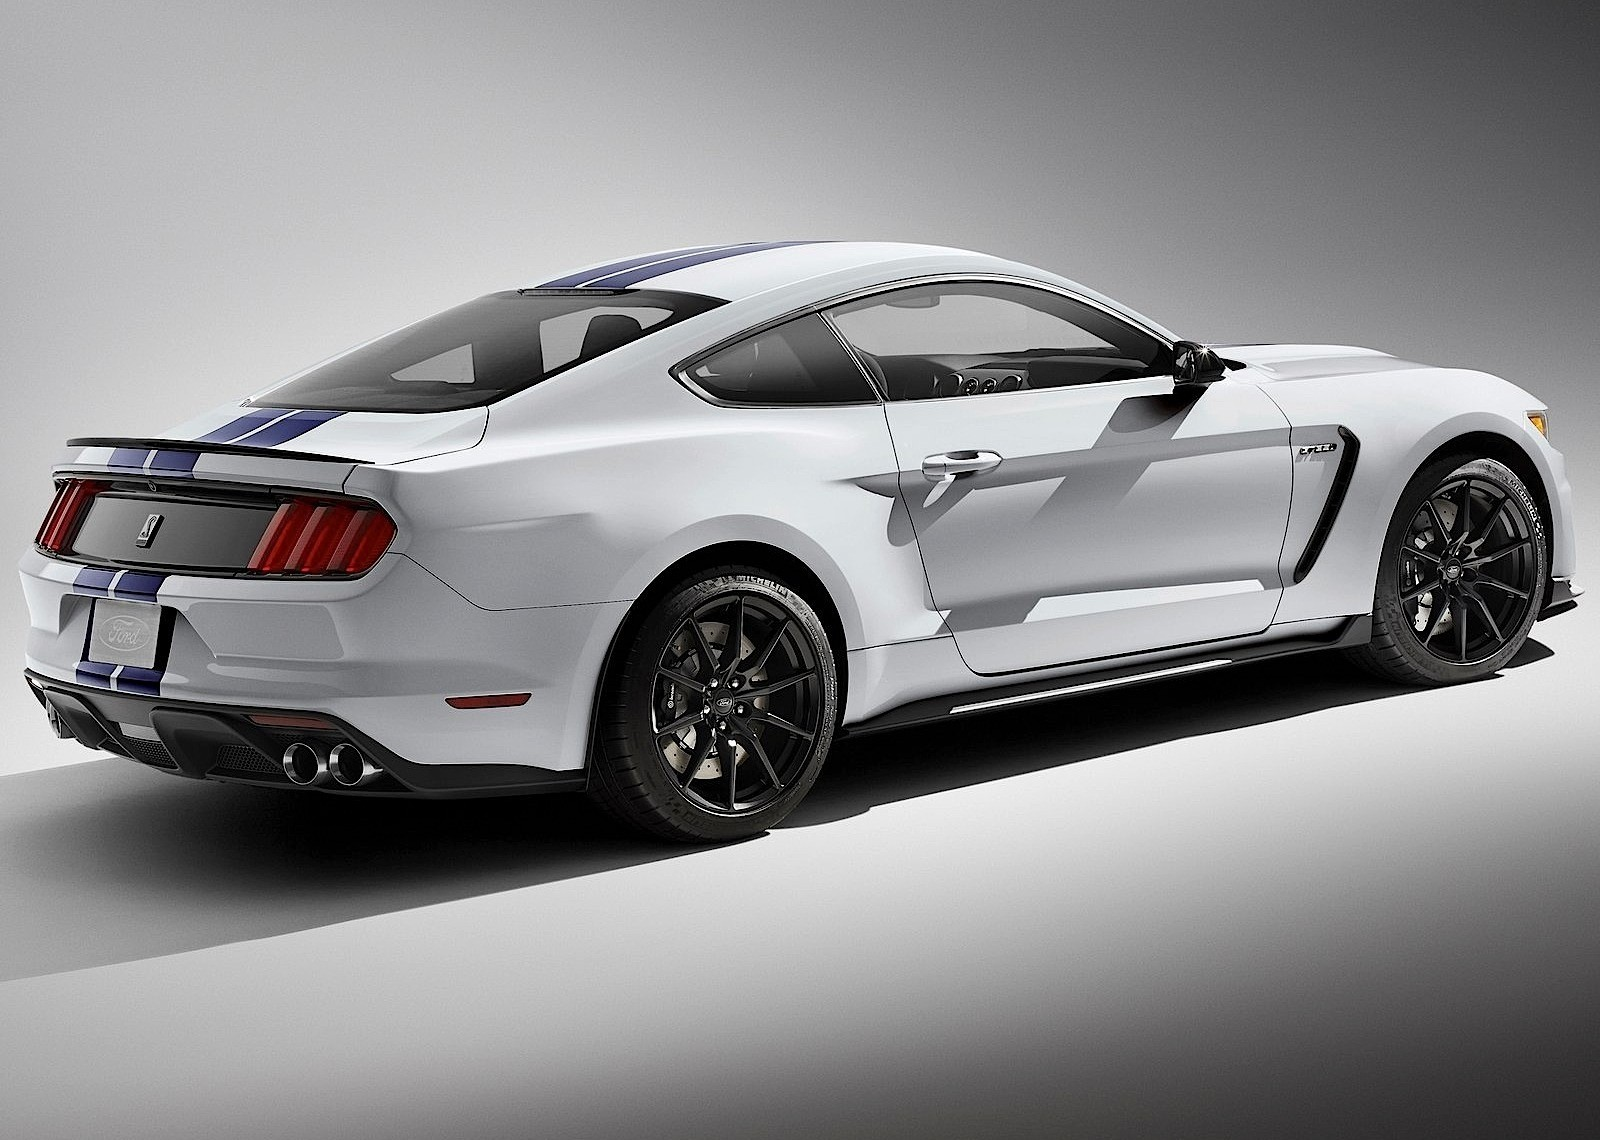 FORD Mustang Shelby GT350 - 2015, 2016, 2017 - autoevolution